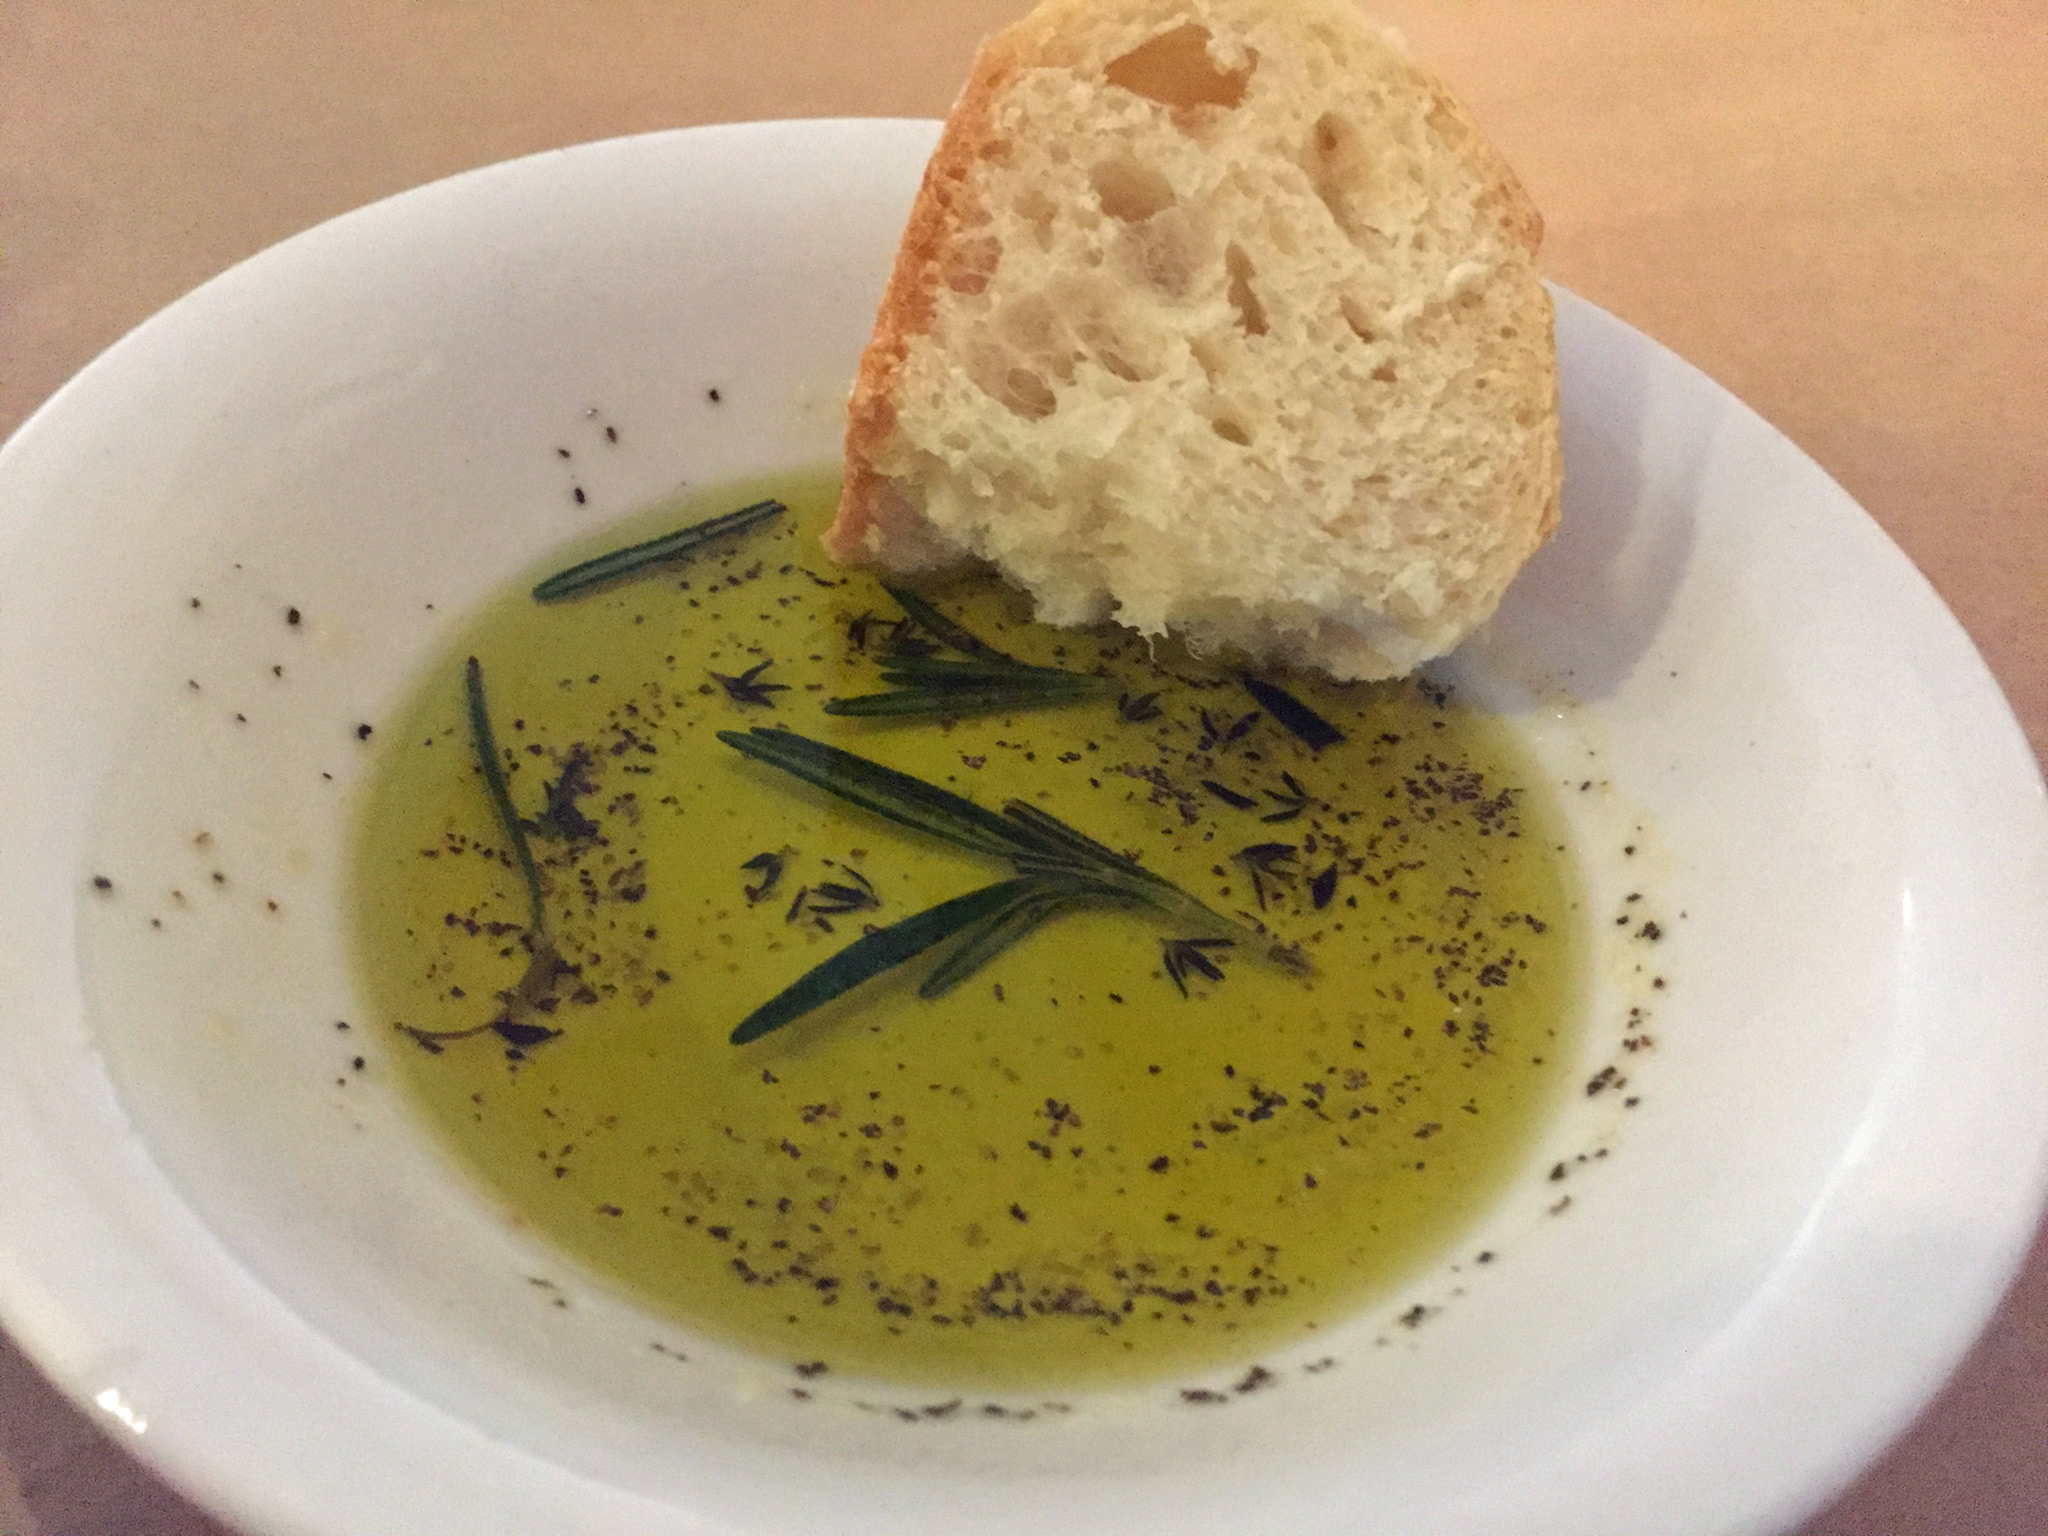 Italian Bread Dip - Try making this delicious and easy Italian Bread Dip for an appetizer or side dish during your next meal.